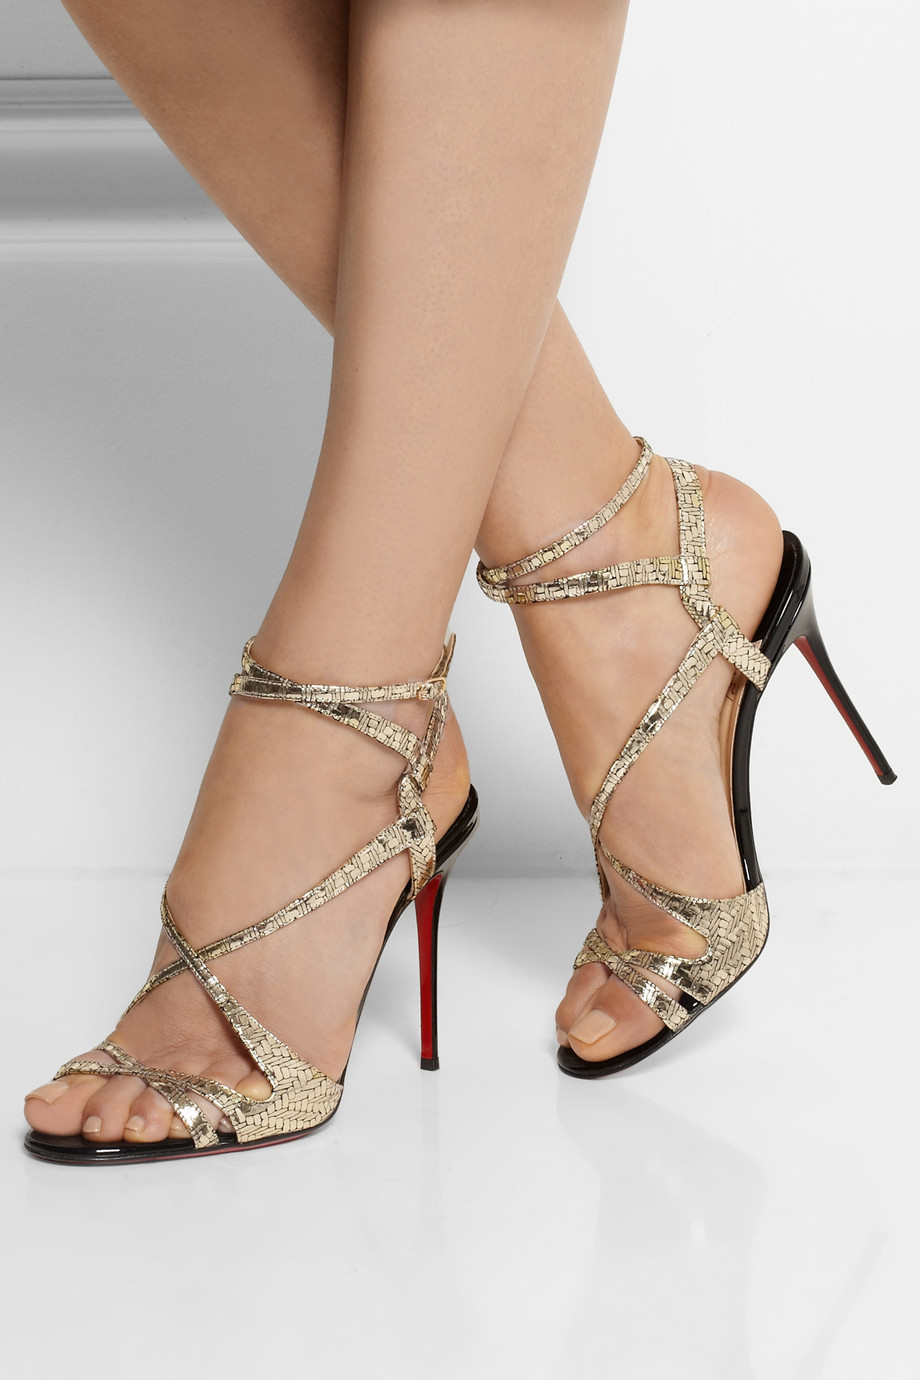 Christian Louboutin Audrey 100 Metallic Coated Suede